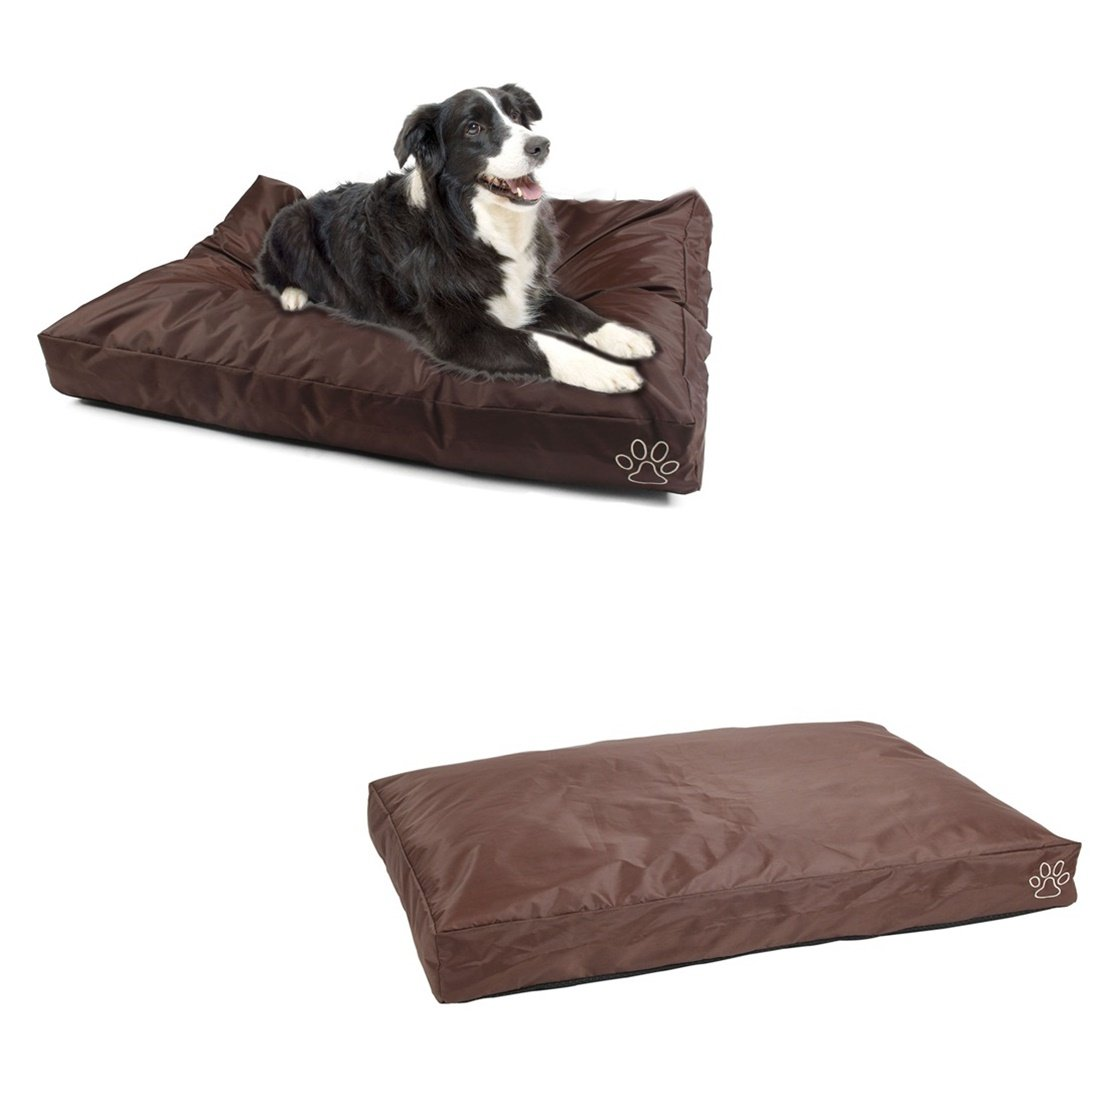 1Pcs Tip-top Popular Pet Bed Cover Size L 36'' x 29'' Dirty Protects Dog Comfort Warm Case Color Type Brown Oxford